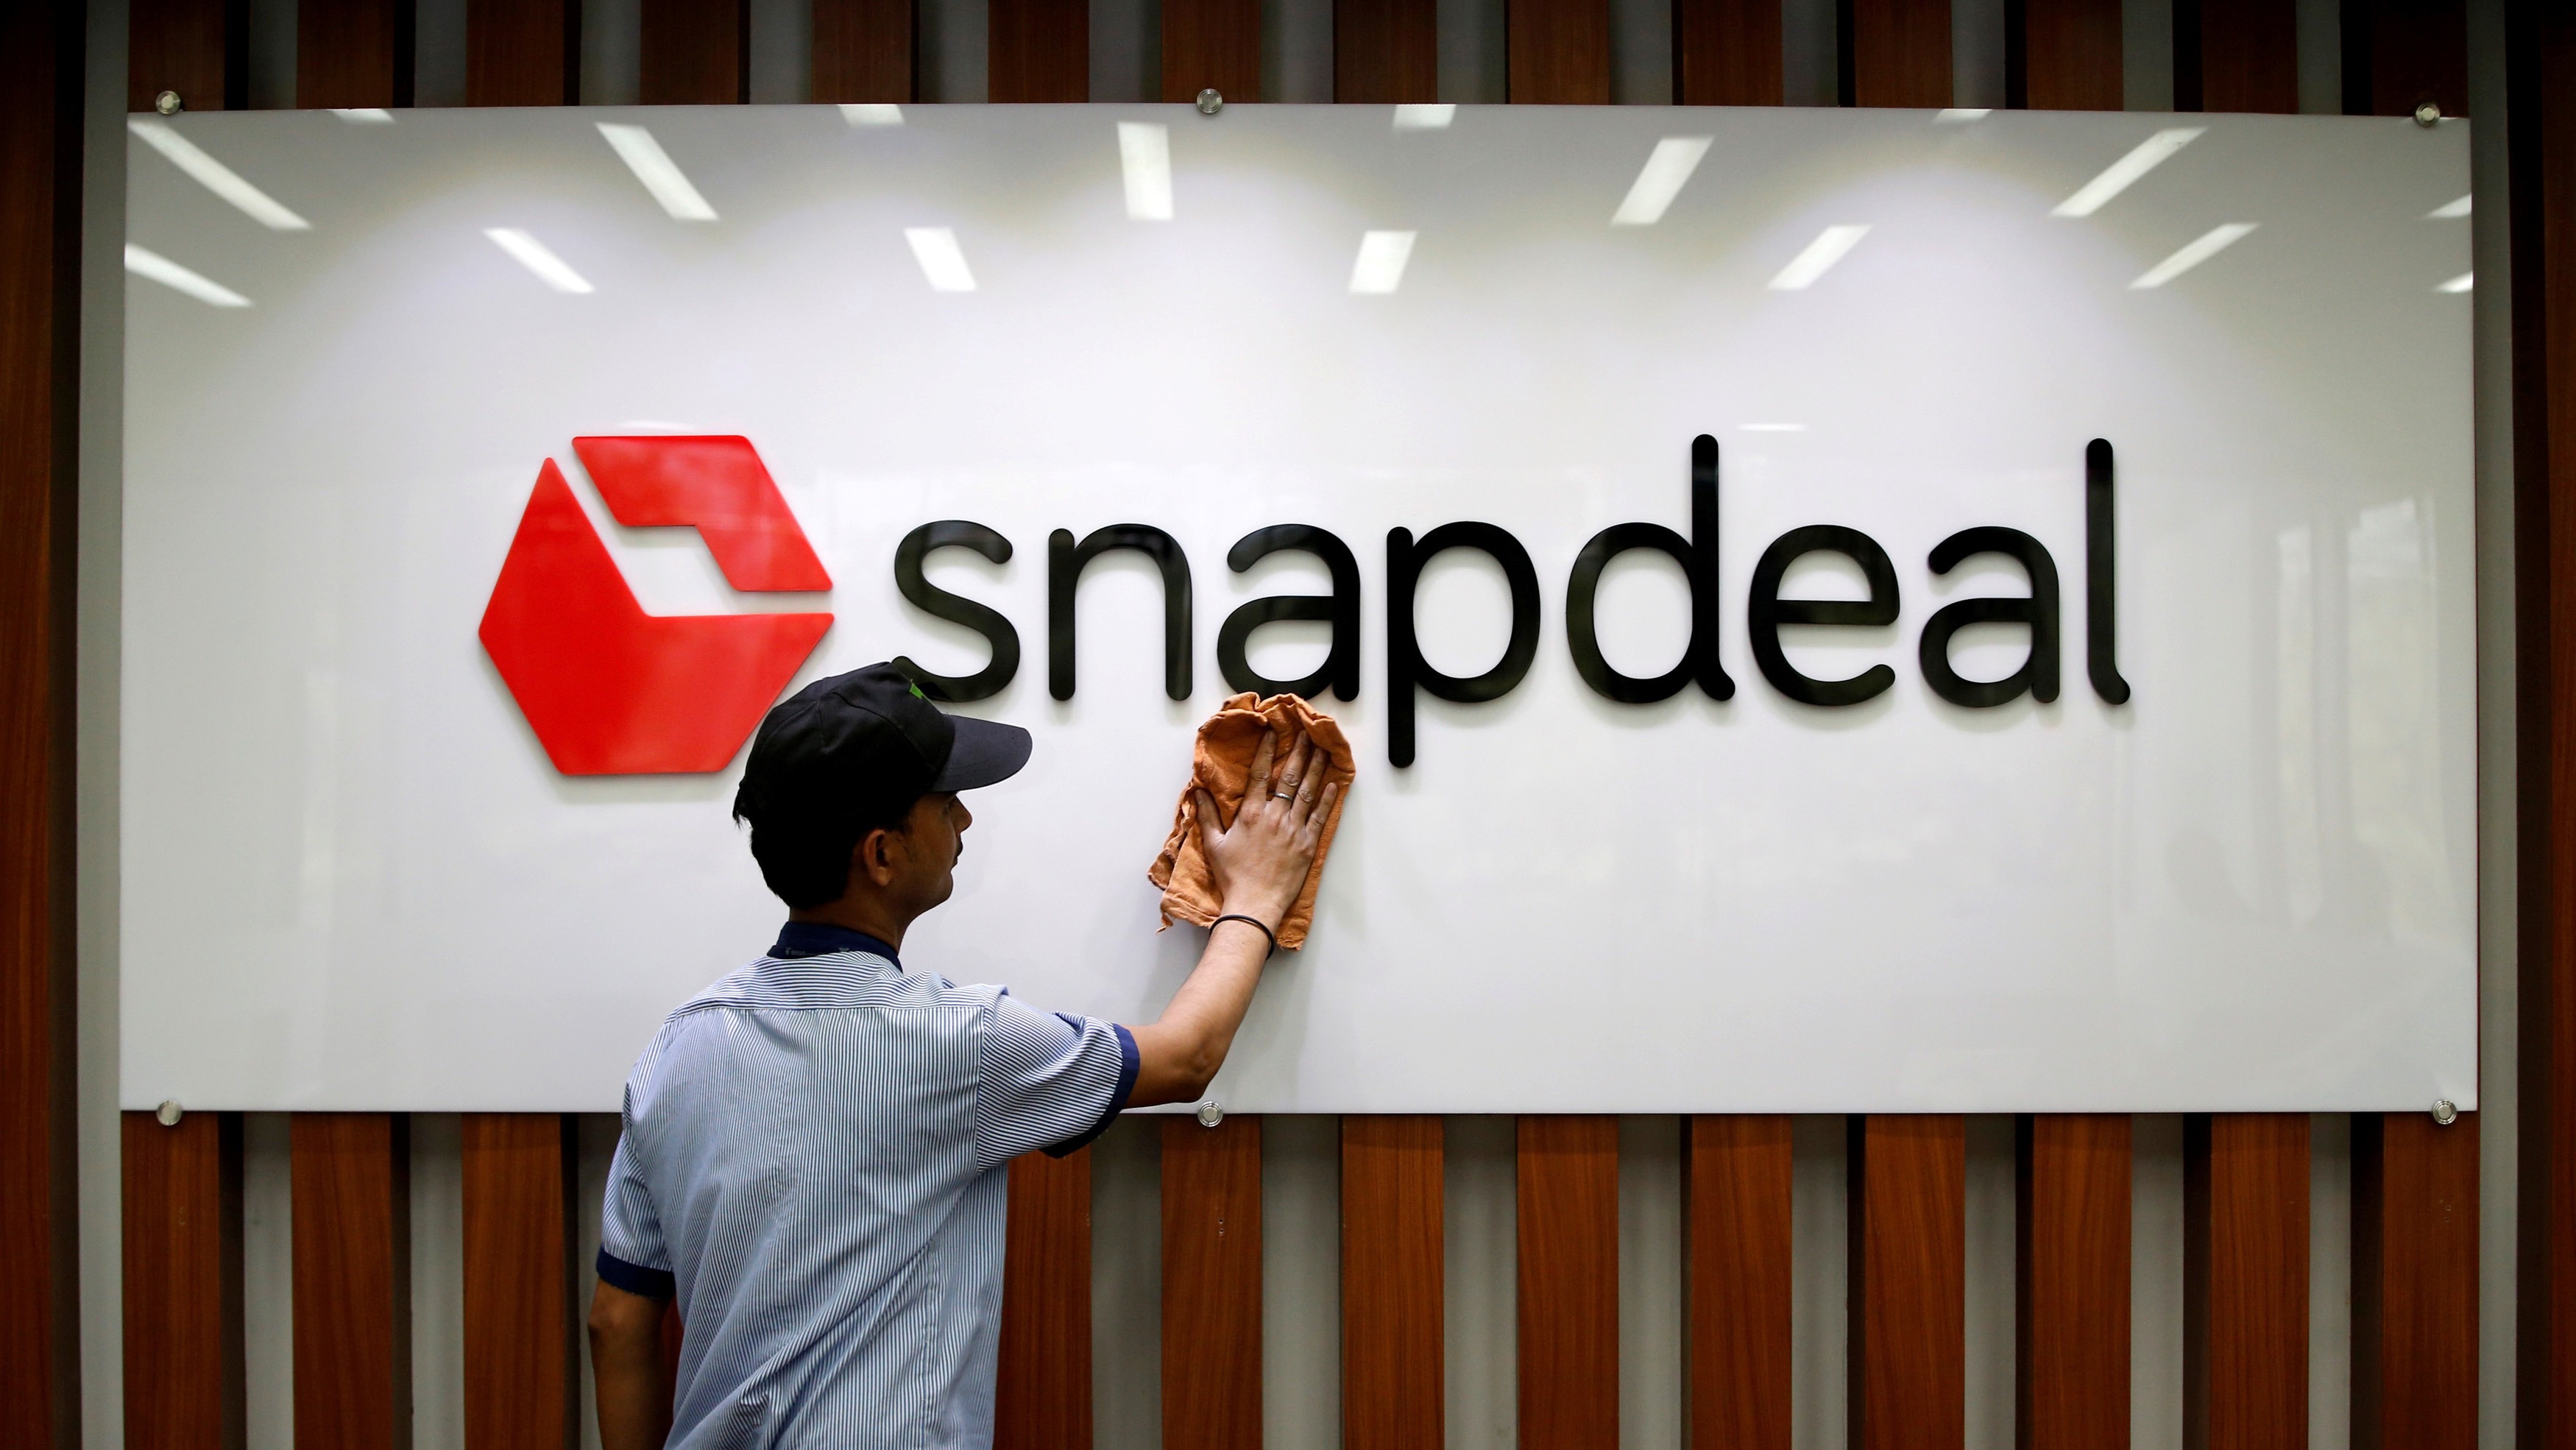 FILE PHOTO: An employee cleans a Snapdeal logo at its headquarters in Gurugram on the outskirts of New Delhi, India April 3, 2017. REUTERS/Adnan Abidi - RTX34188